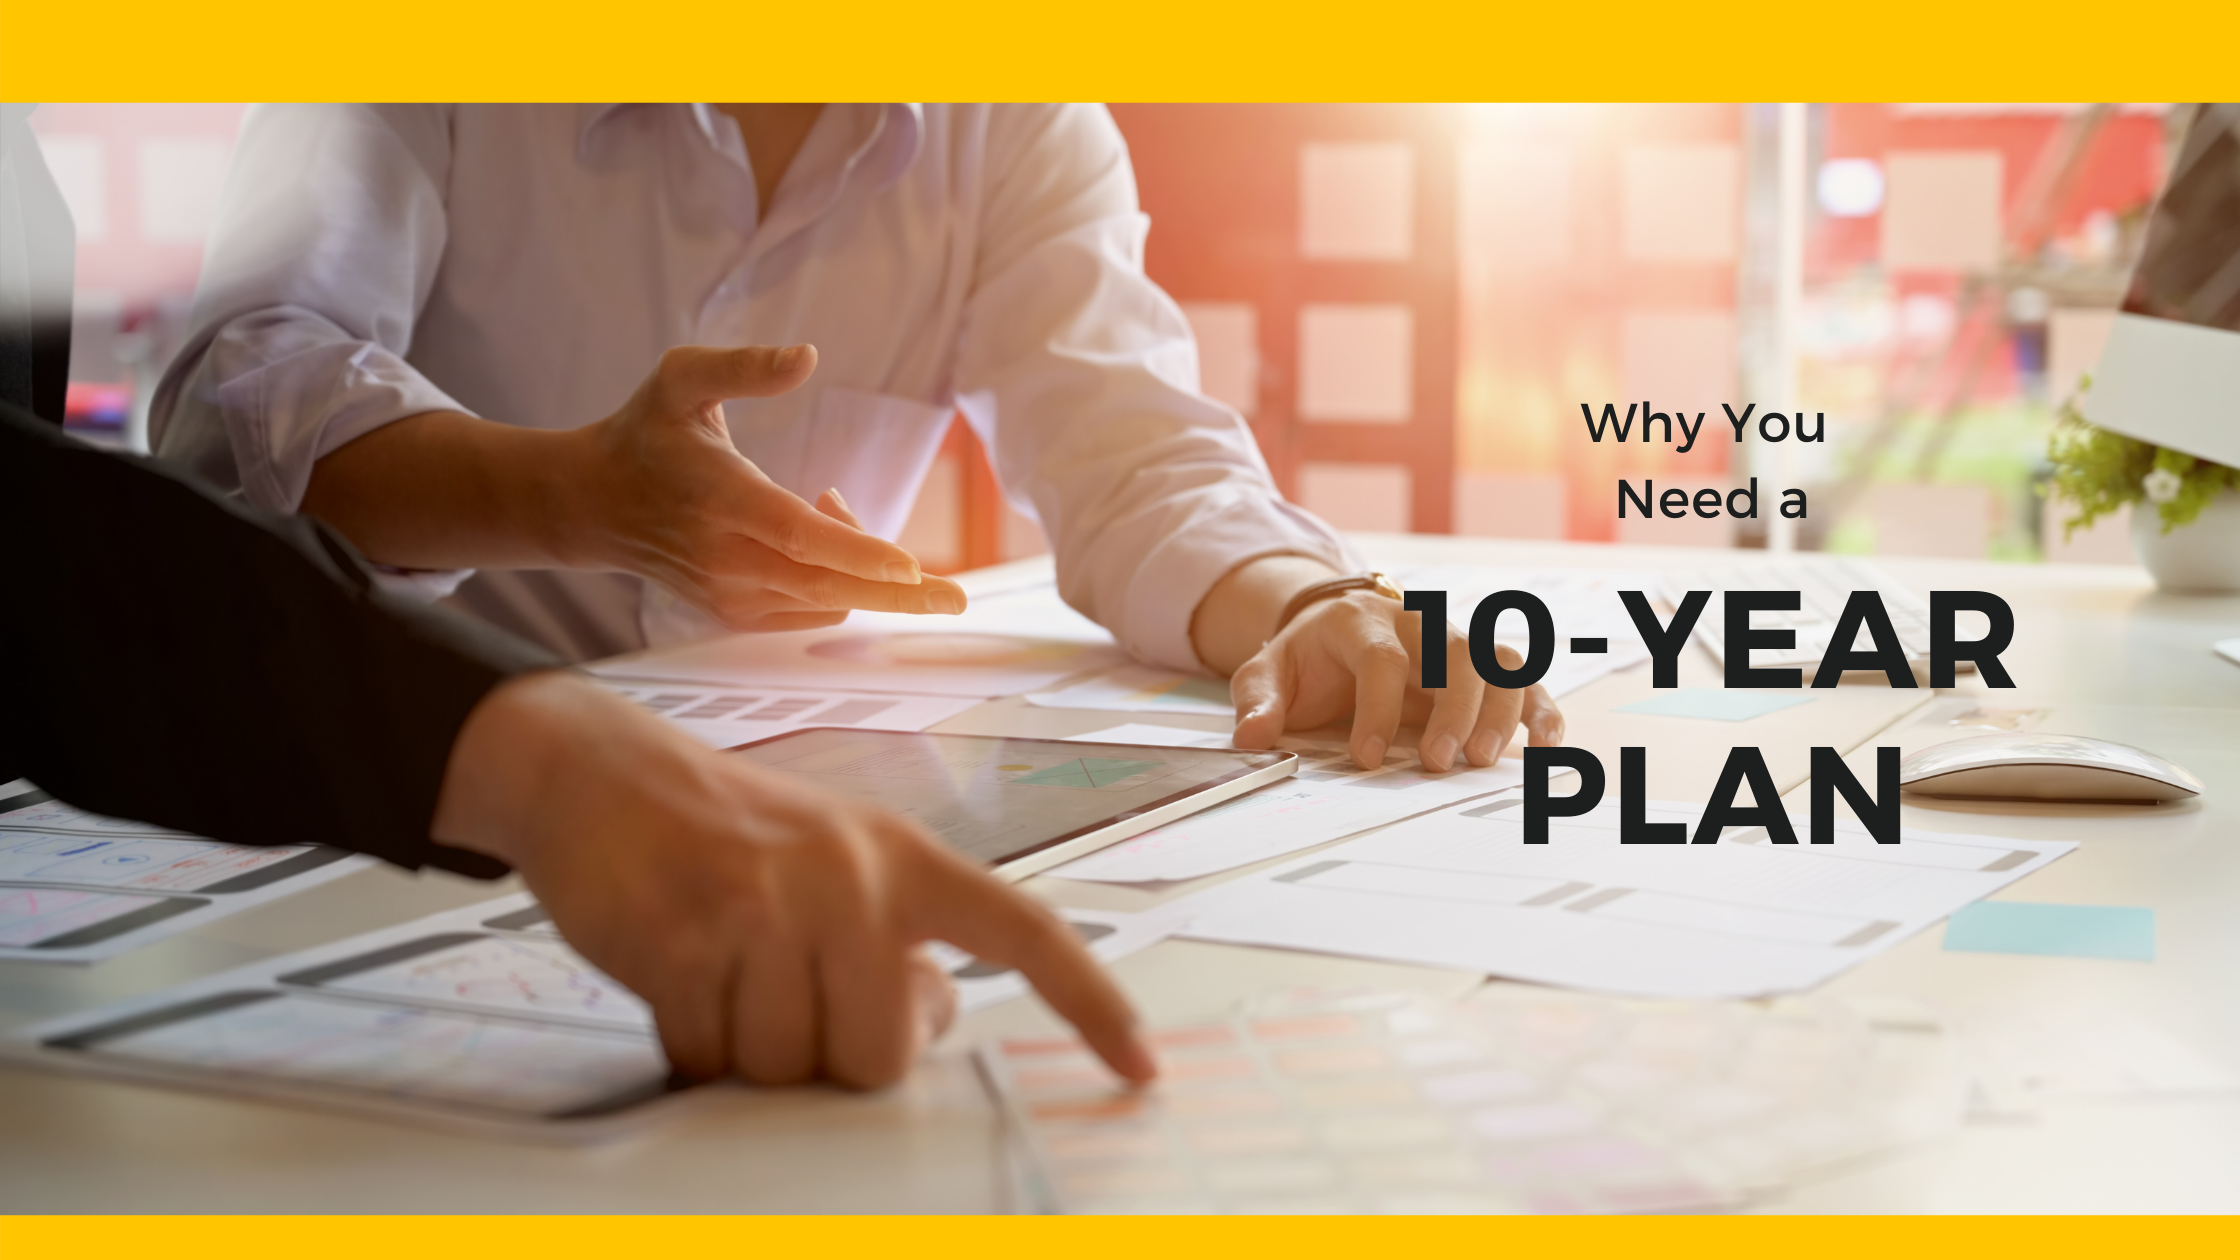 Why You Need a 10-year Plan